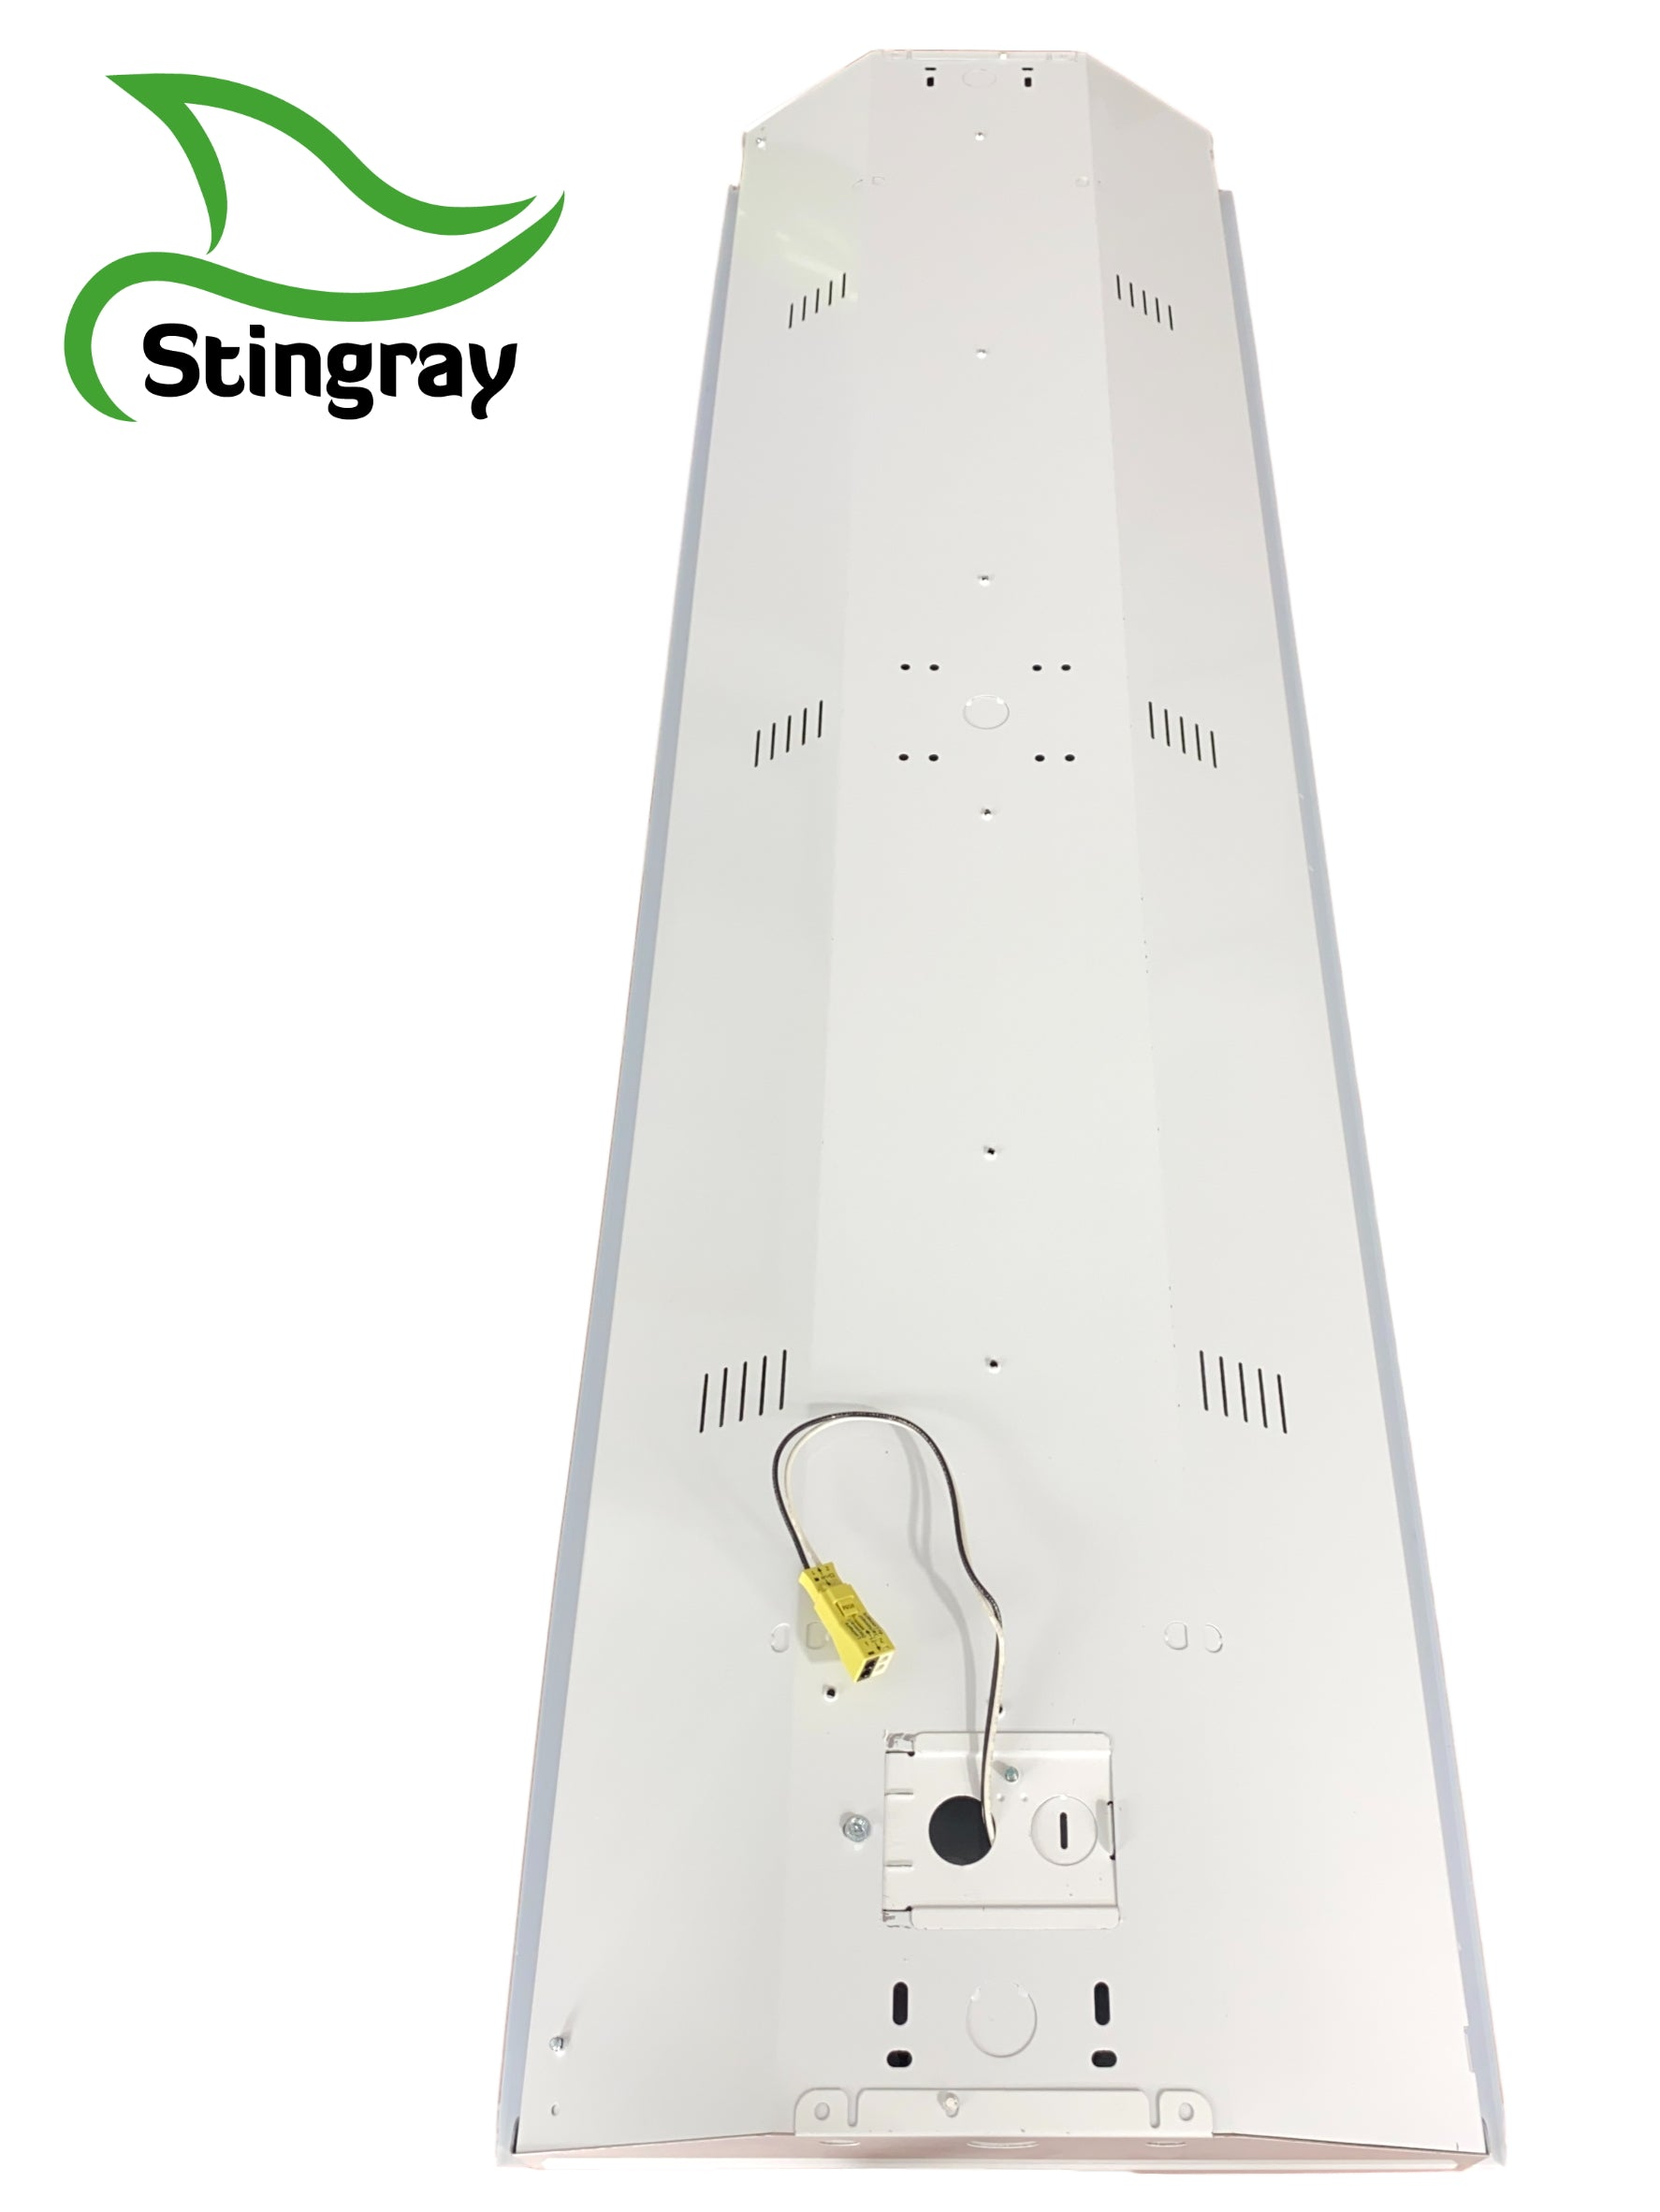 LED StingRay 6 XL MOTION ACTIVATED Shop Light (CLEAR LED)